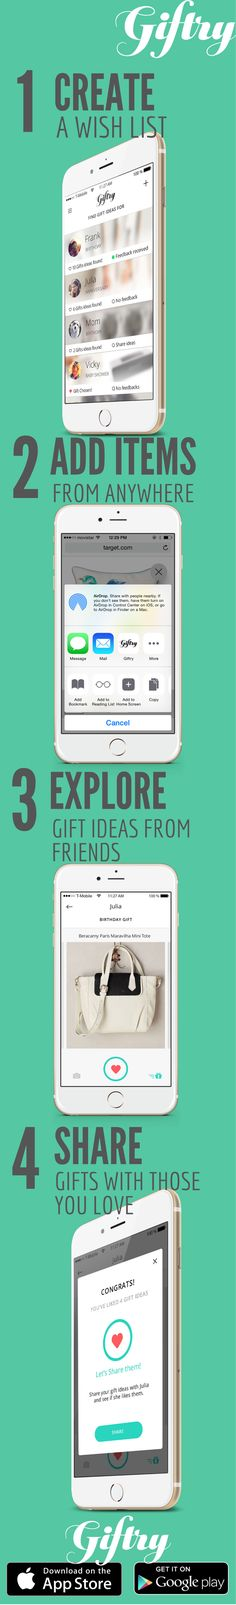 How to never give or receive a bad gift again in 4 easy steps using the free Giftry app!